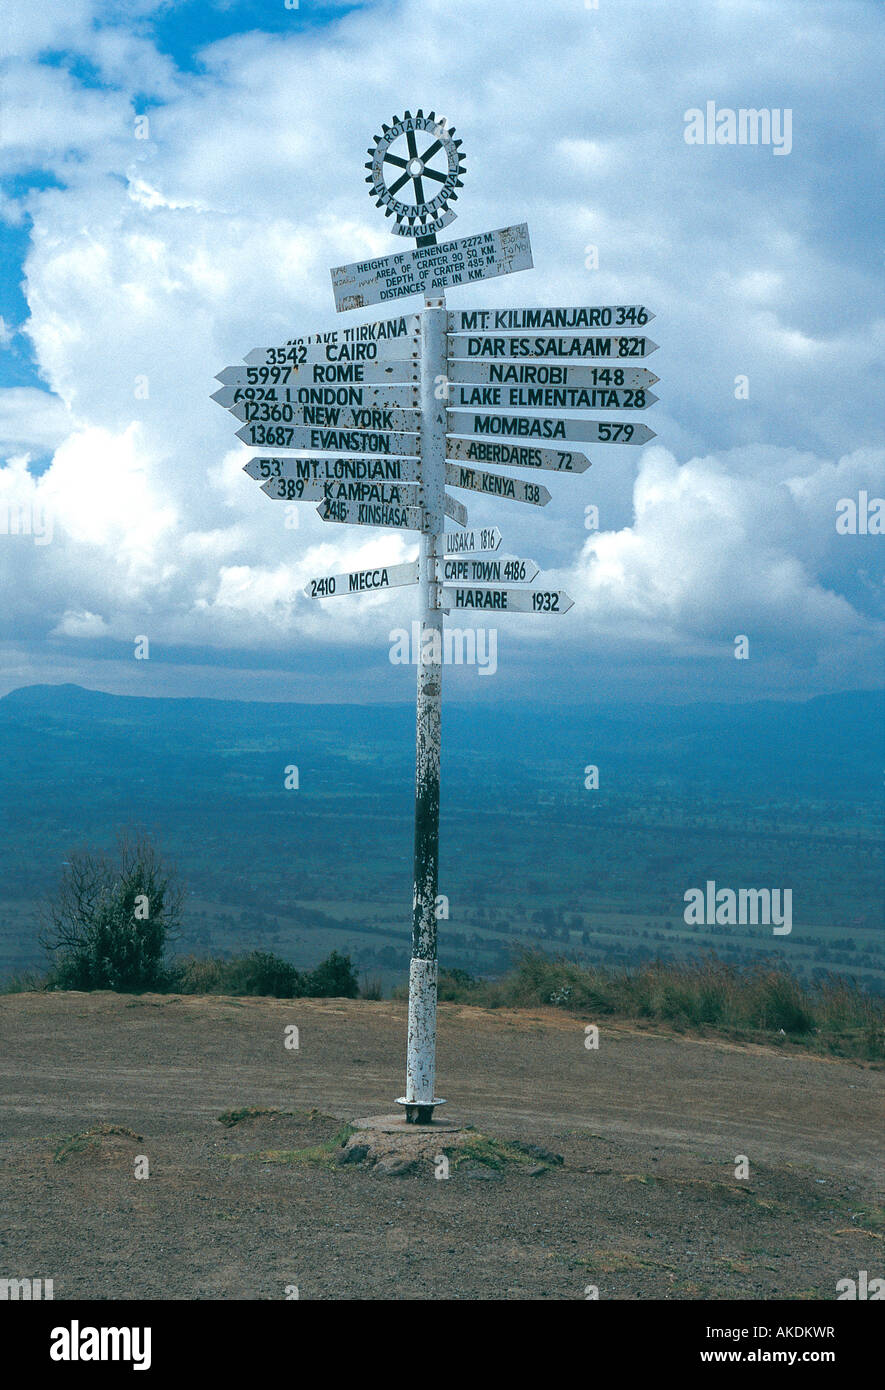 Signpost showing distances to many destinations erected by Rotary International on Menengai Crater Kenya East Africa - Stock Image